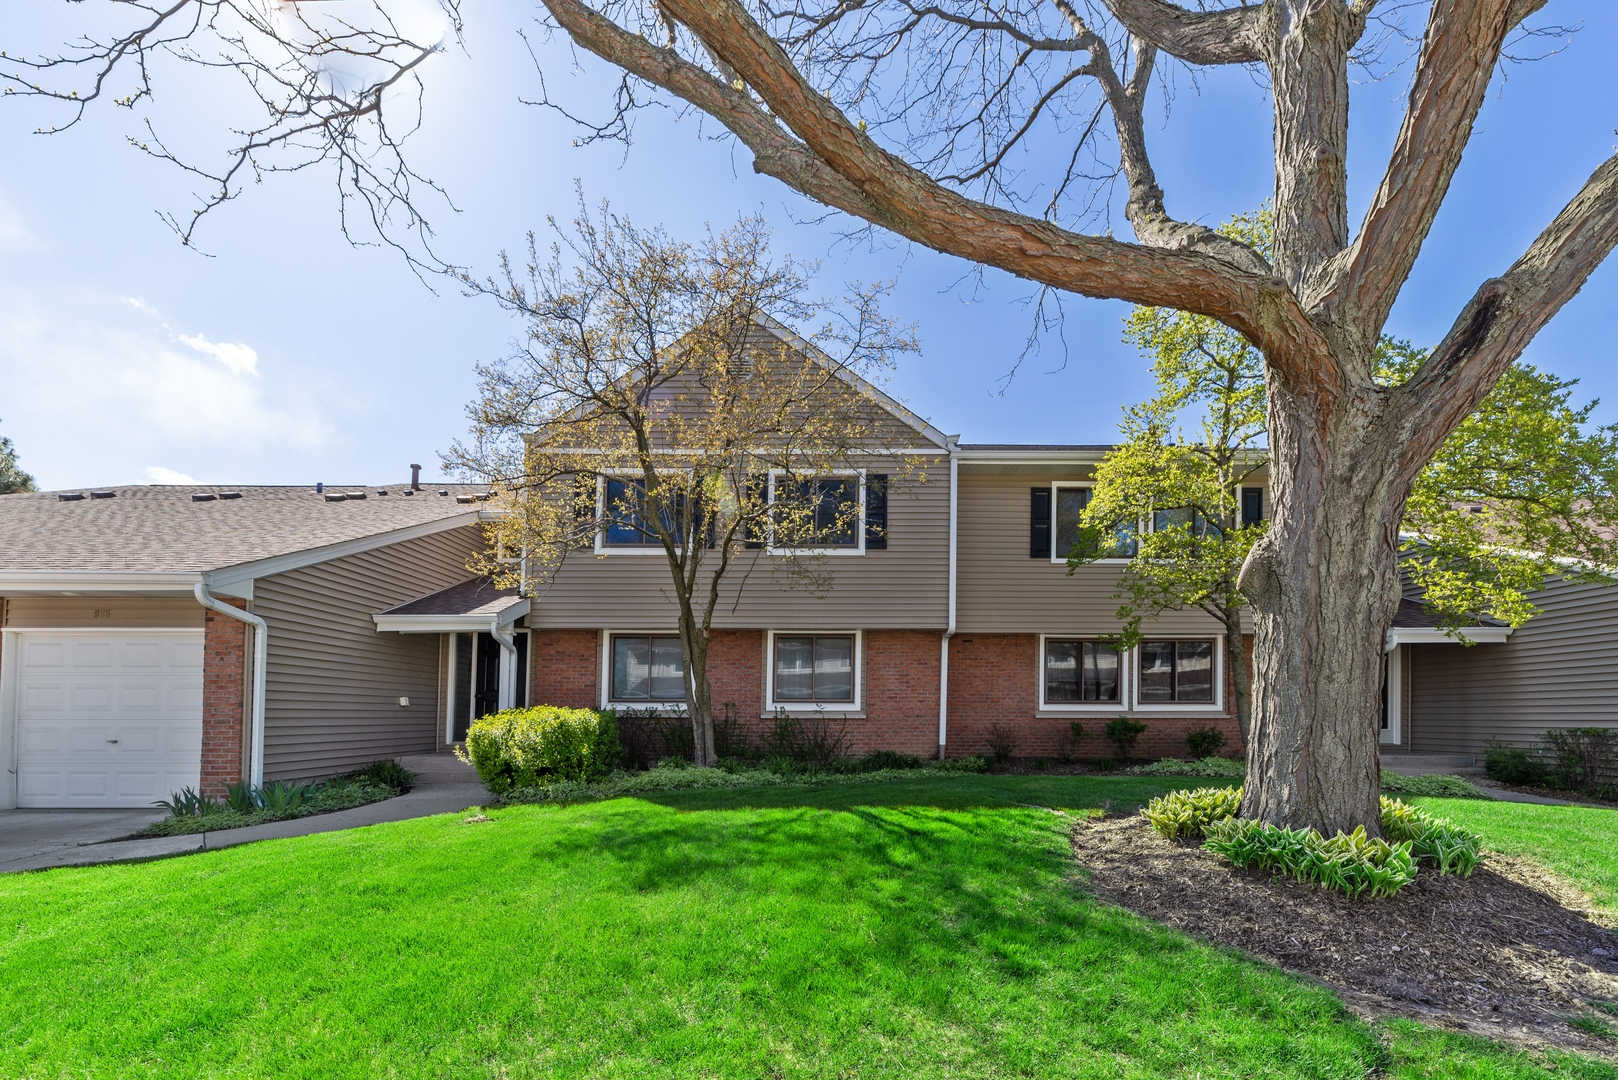 989 Pinetree Circle South, Buffalo Grove in Lake County, IL 60089 Home for Sale